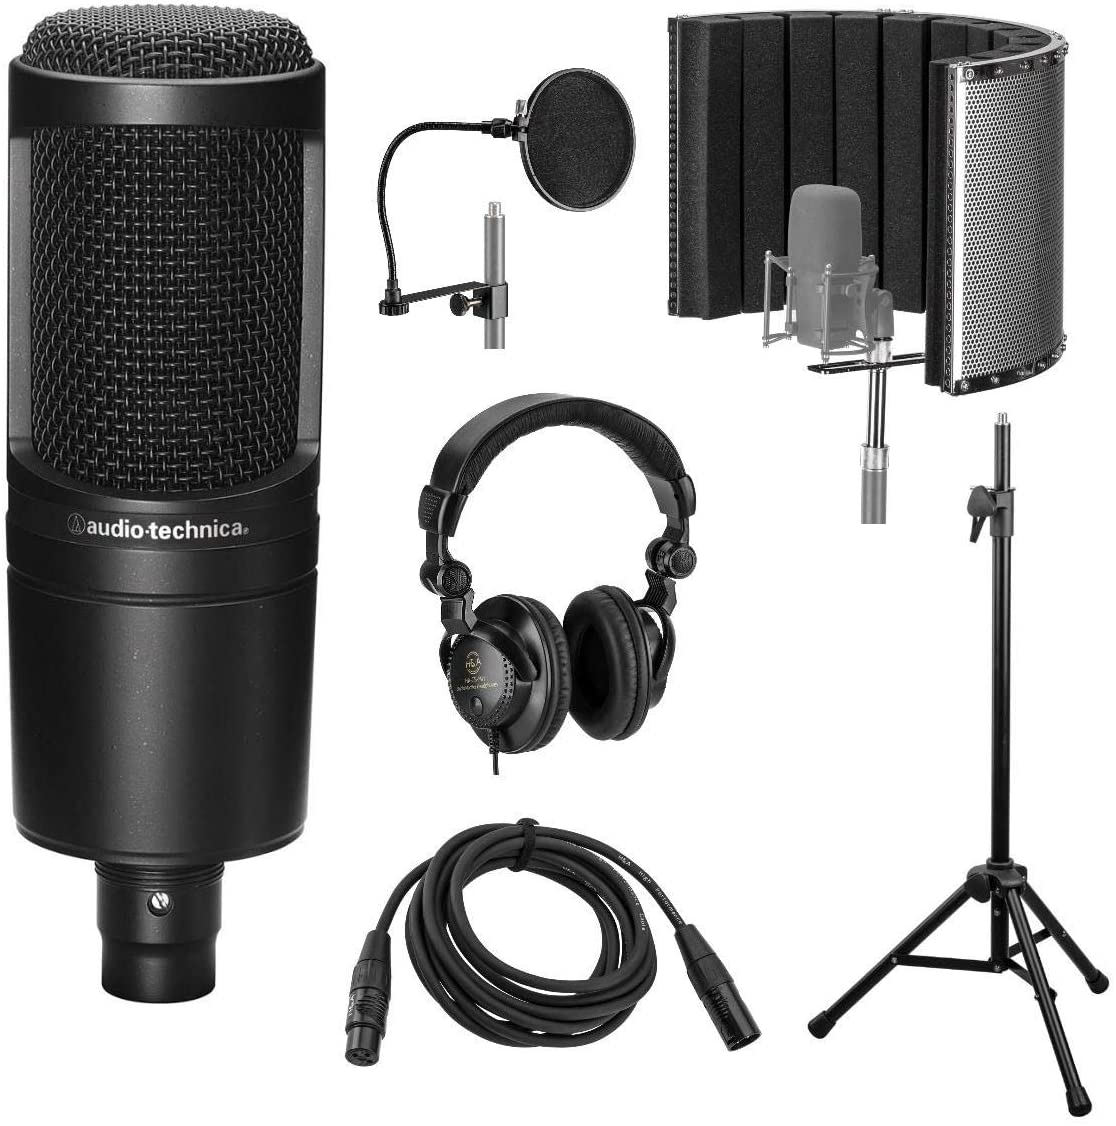 Audio-Technica AT2020 Cardioid Condenser Microphone with Vocal Recording Setup Kit